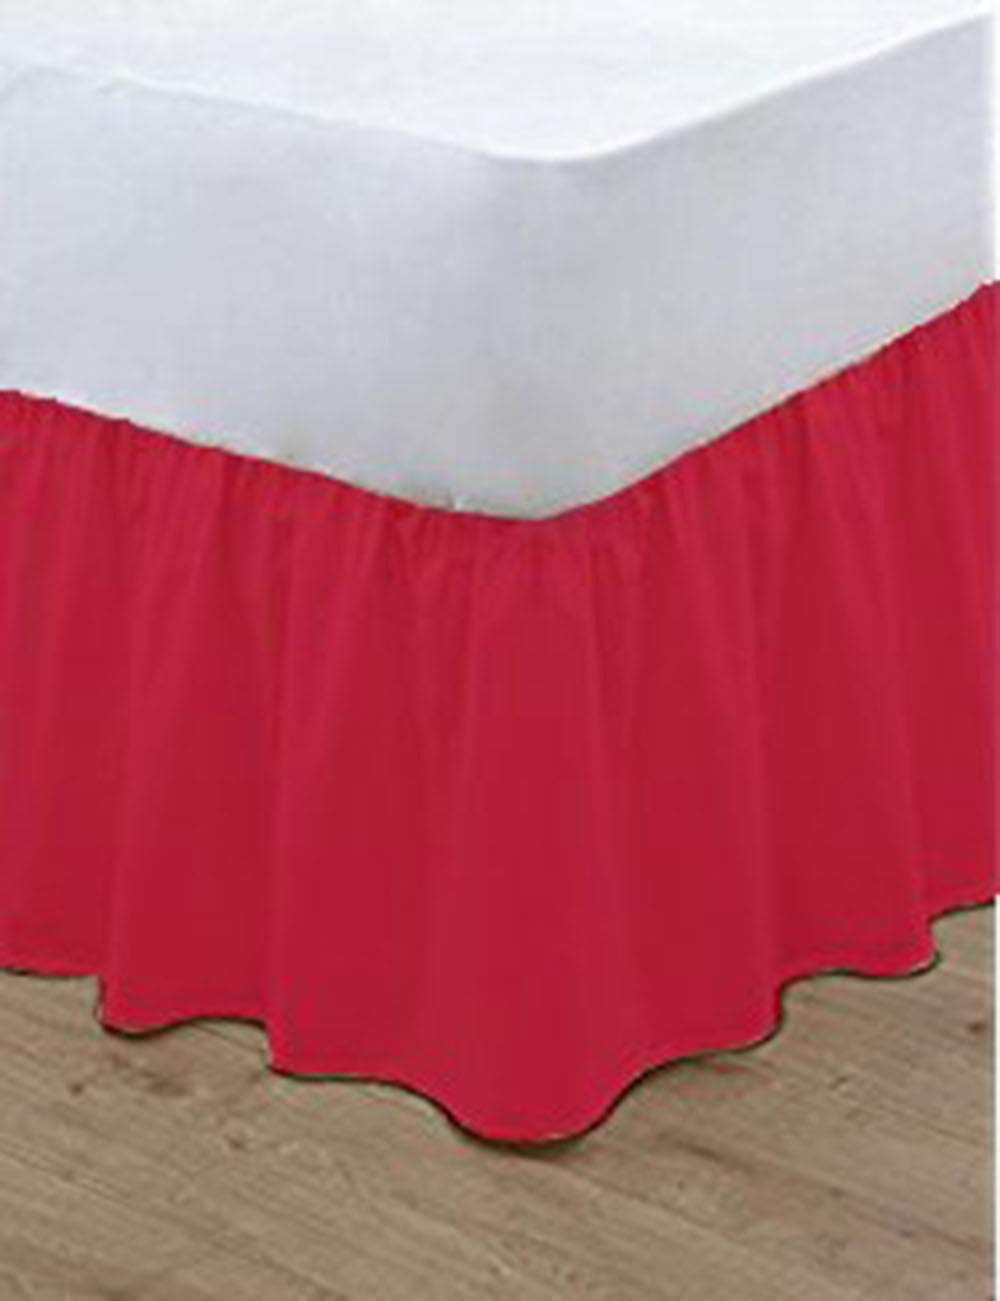 Plain Dyed BASE Valance Sheet Polycotton Percale Easy Care Base Valance Sheet Red Double Only By EXQUIZIT HOME.